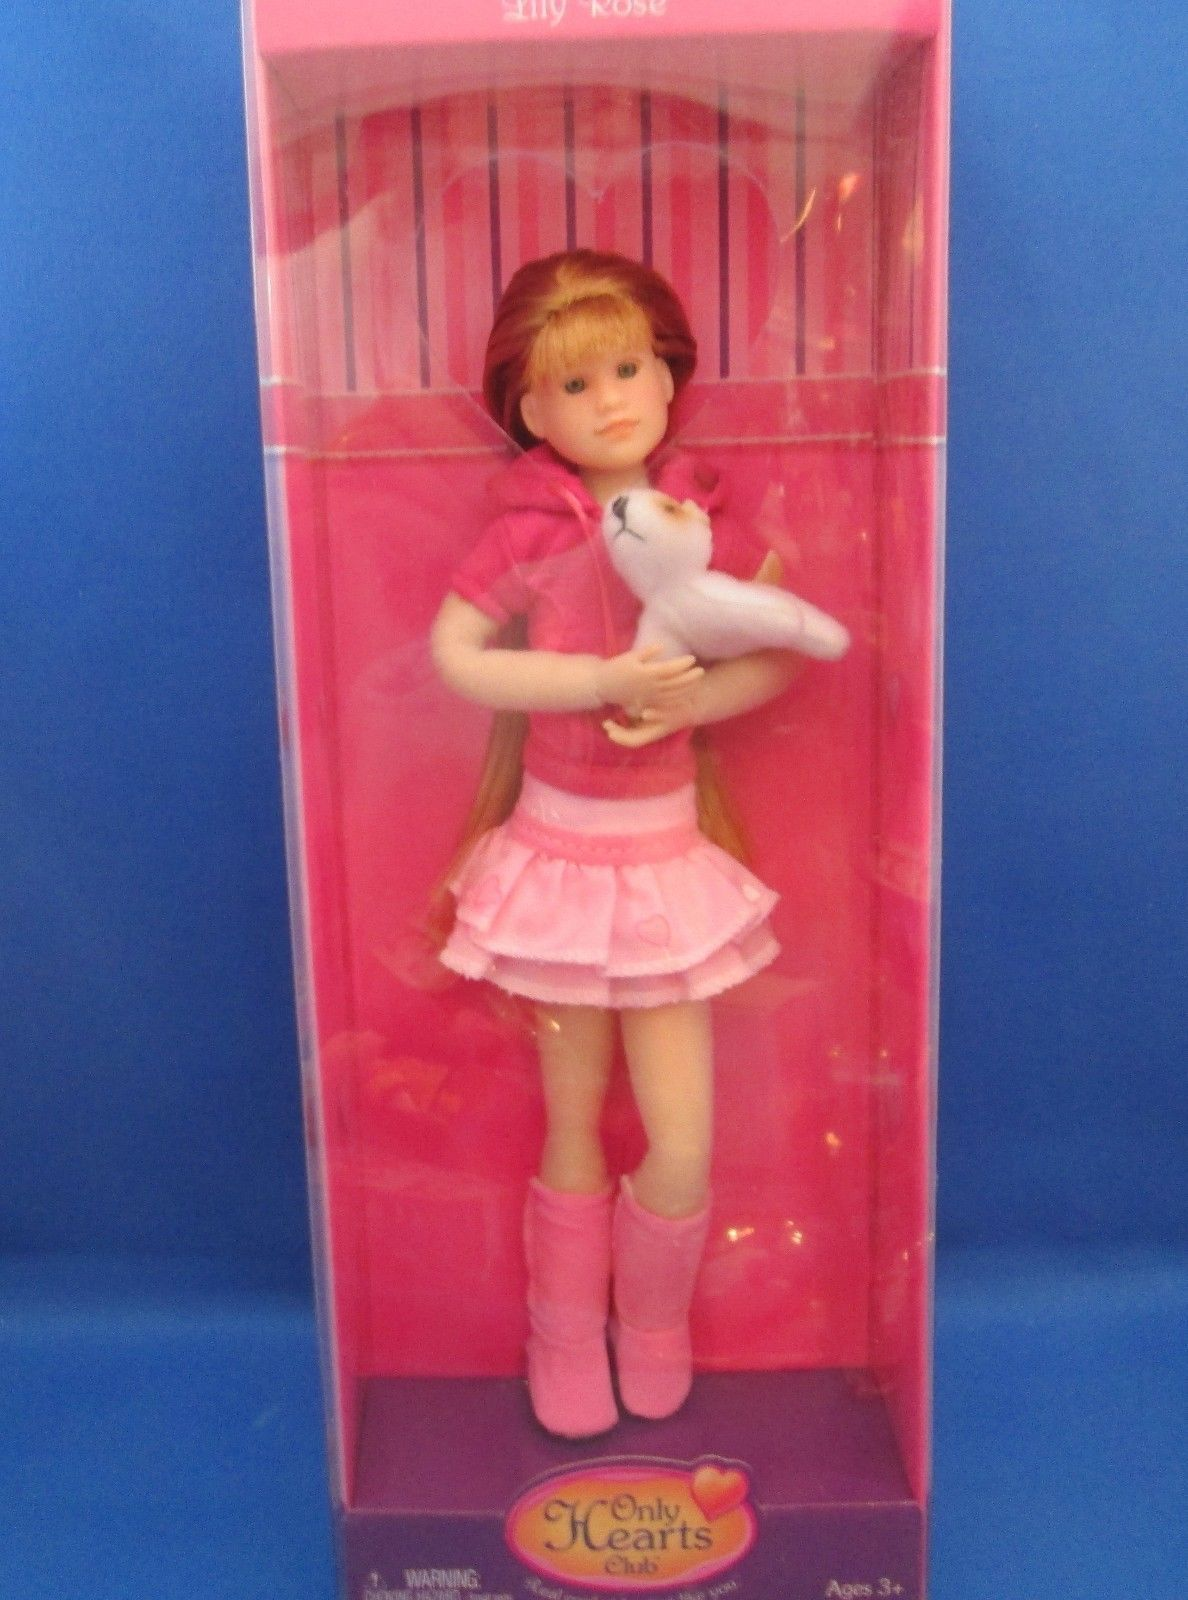 Only Hearts Club Lily Rose Puppy 2006 | eBay